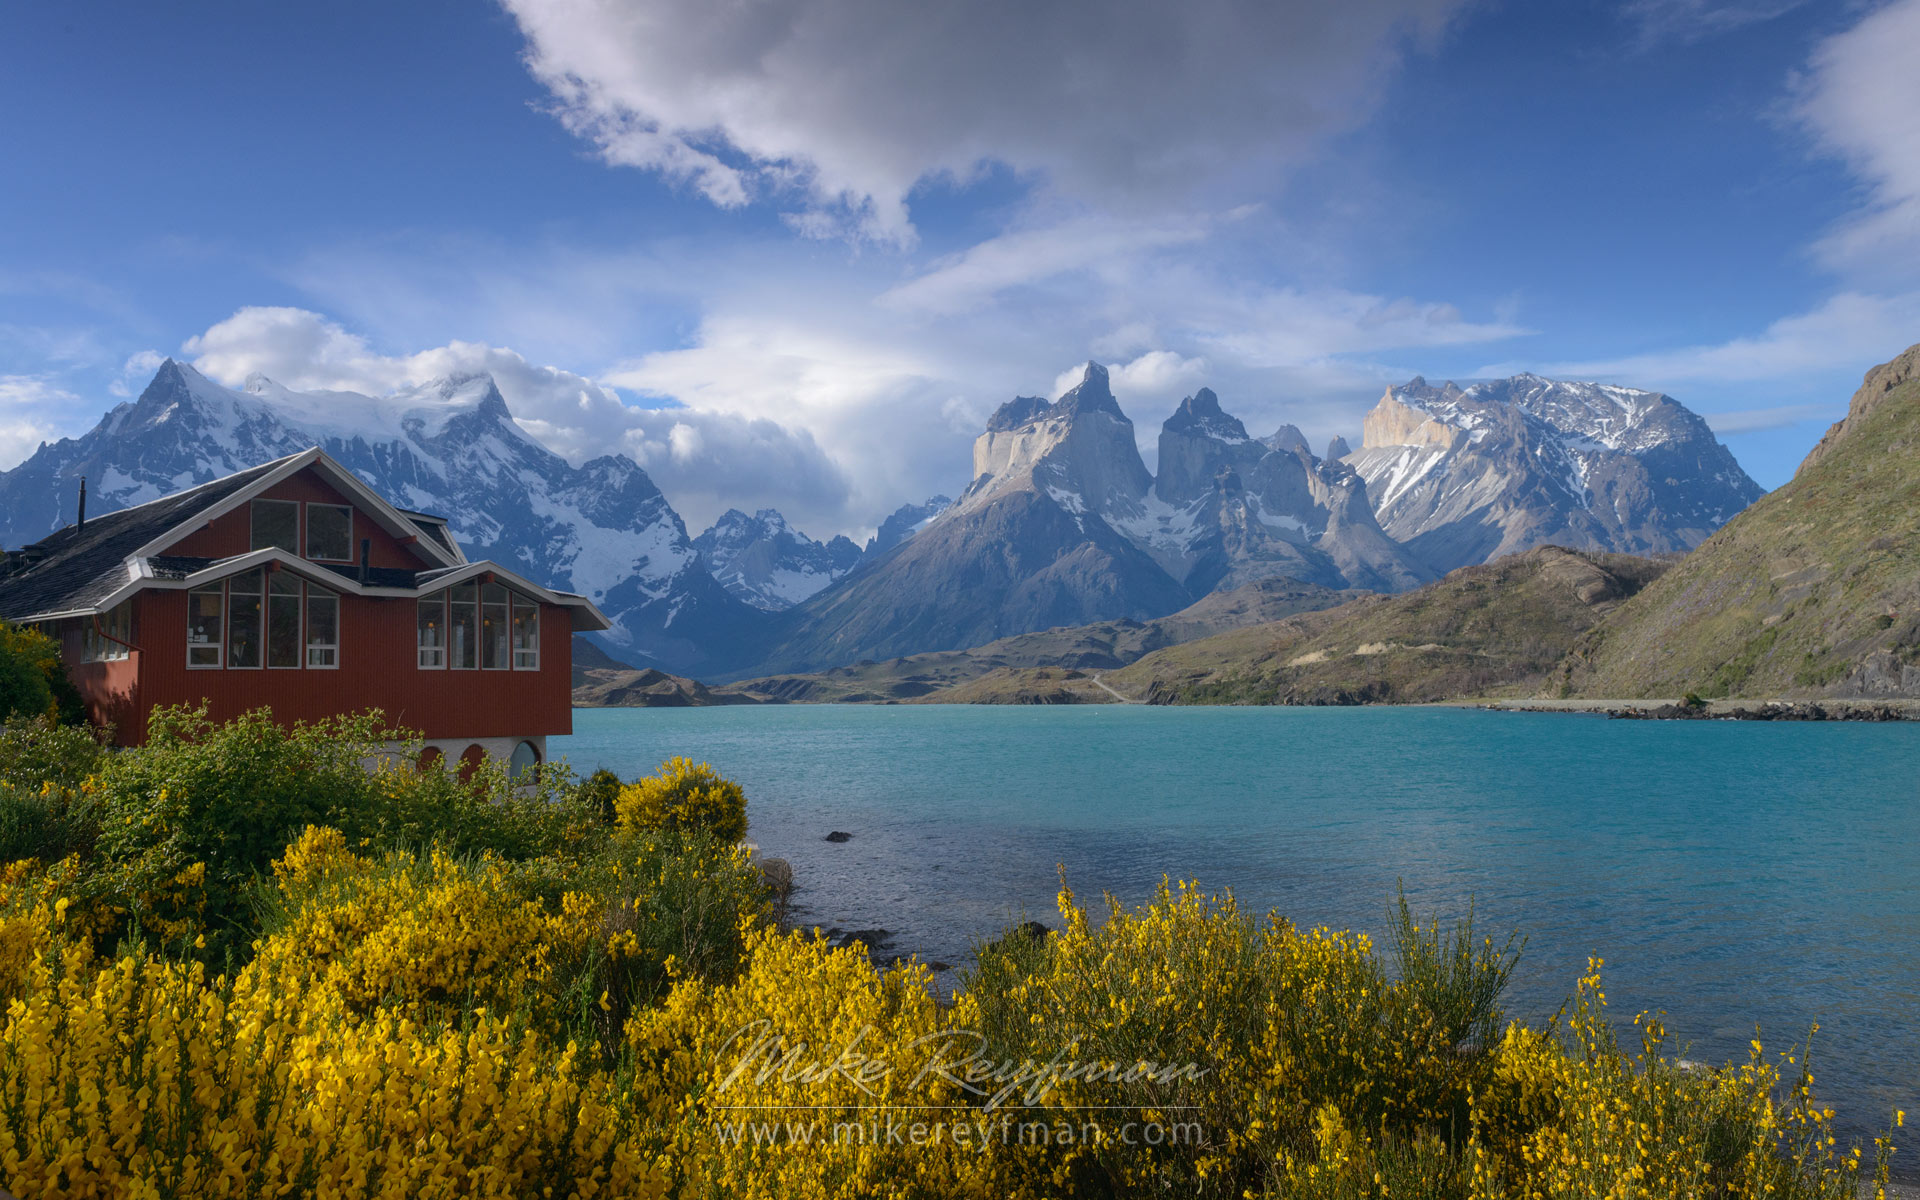 Hosteria Pehoe, Yellow Retama broom bushes and turquoise waters of Lago Pehoe with Cordillera del Paine on the background. Torres del Paine National Park, Magallanes and Antartica Chilena Region XII, Patagonia, Chile. - Torres-Del-Paine-National-Park-Patagonia-Chile - Mike Reyfman Photography